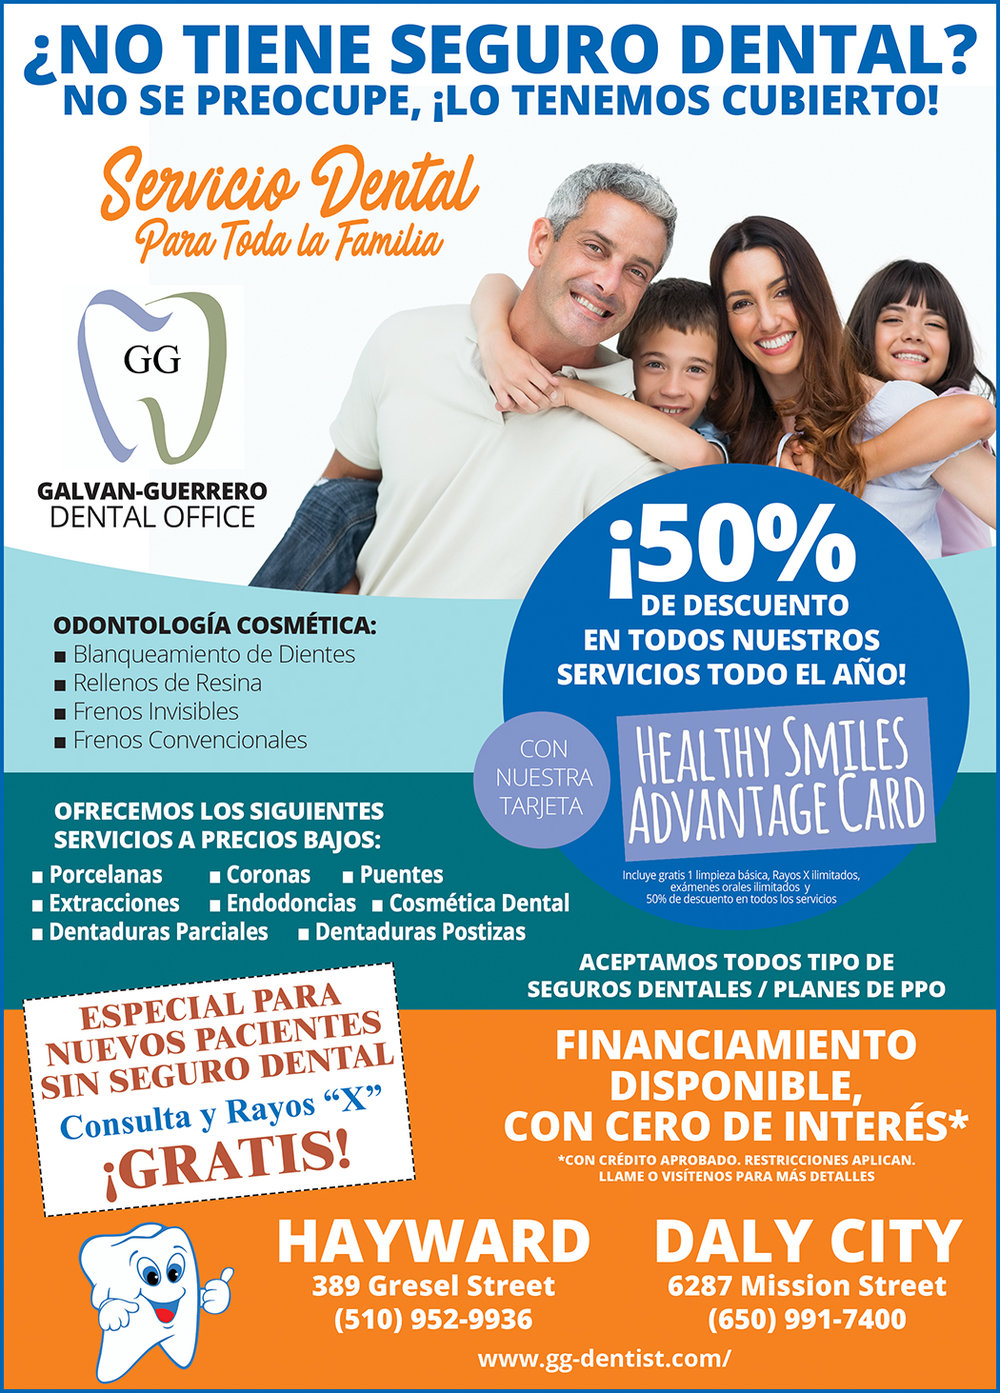 Galvan - Guerrero Dental Office 1 Pag JUNIO 2018 copy.jpg